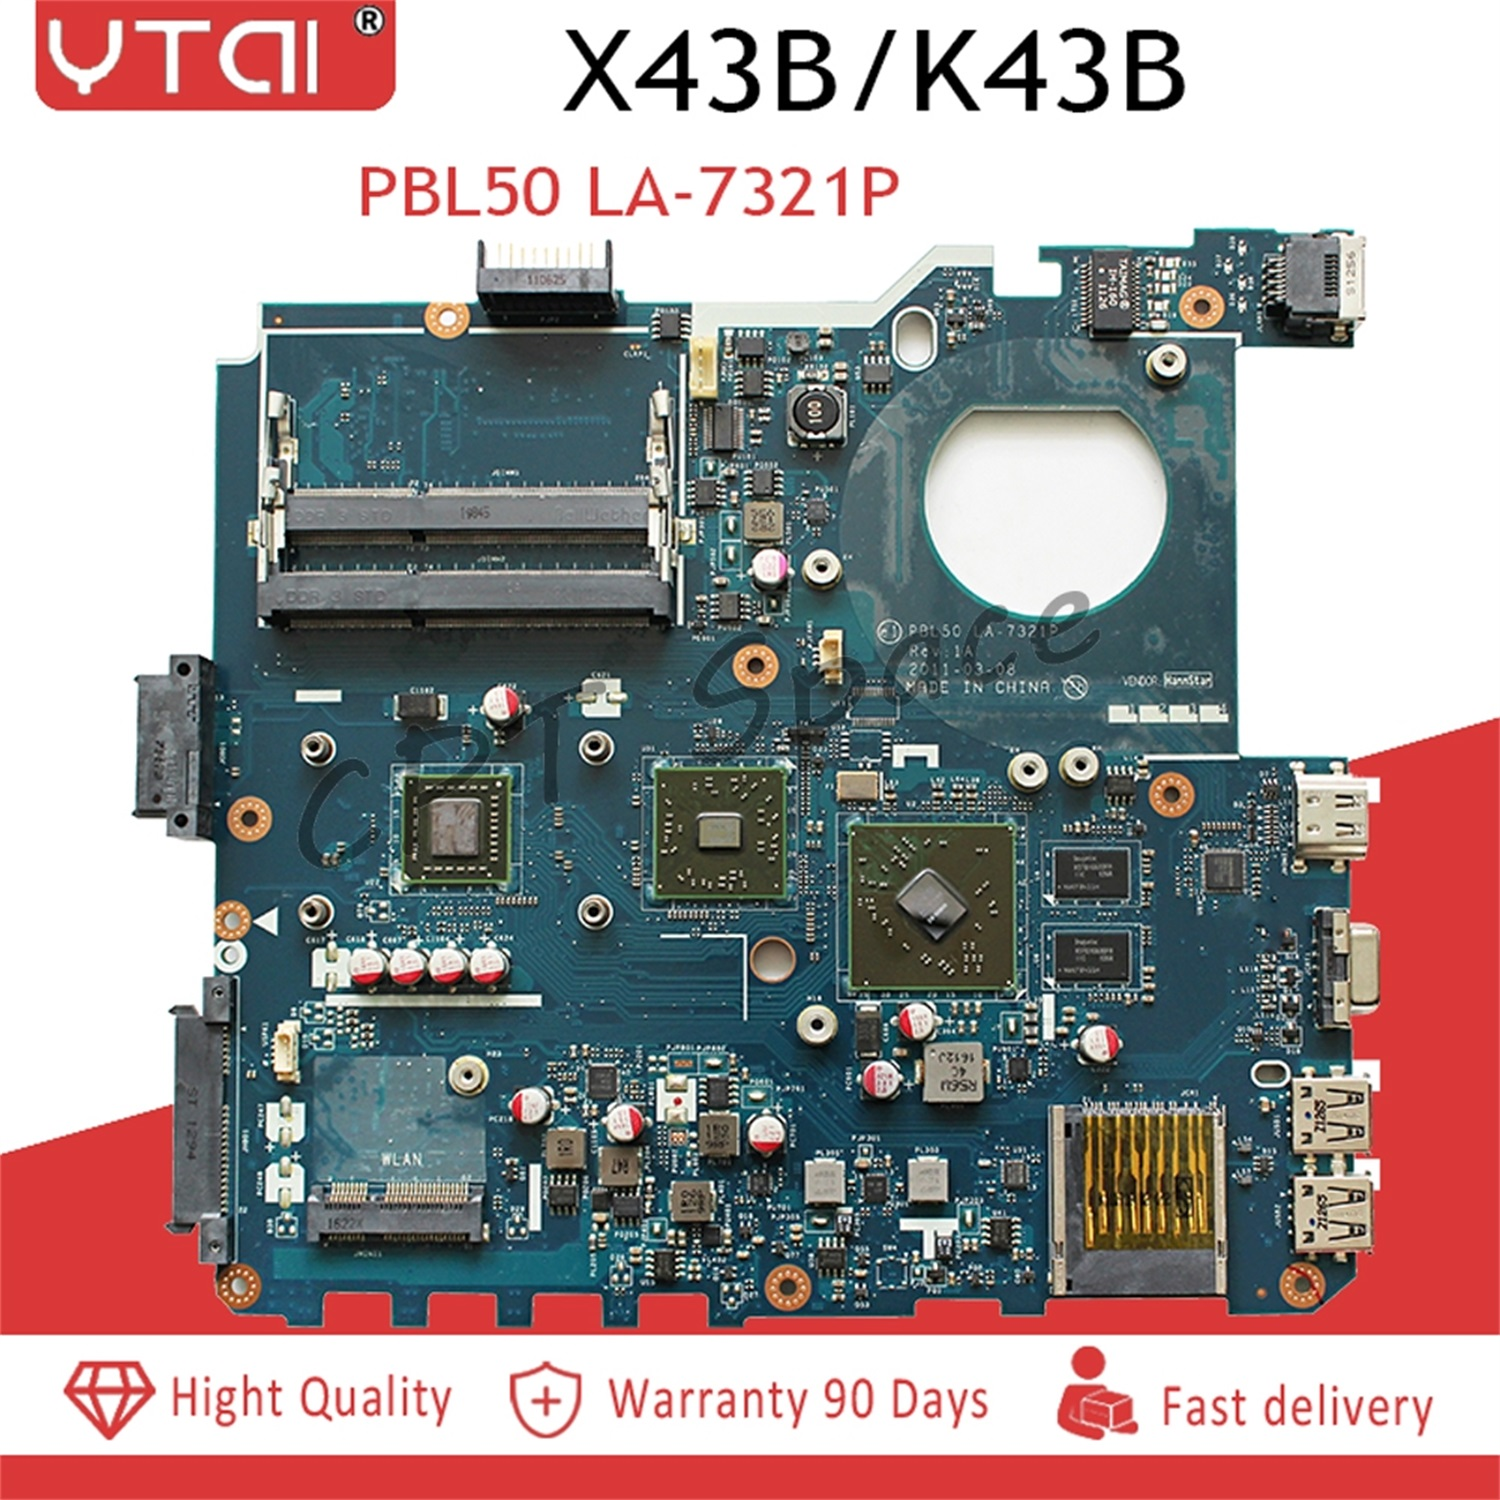 PBL50 LA 7321P K43B mainboard for ASUS K43B K43BR K43BY X43B X43U K43U laptop motherboard Rev